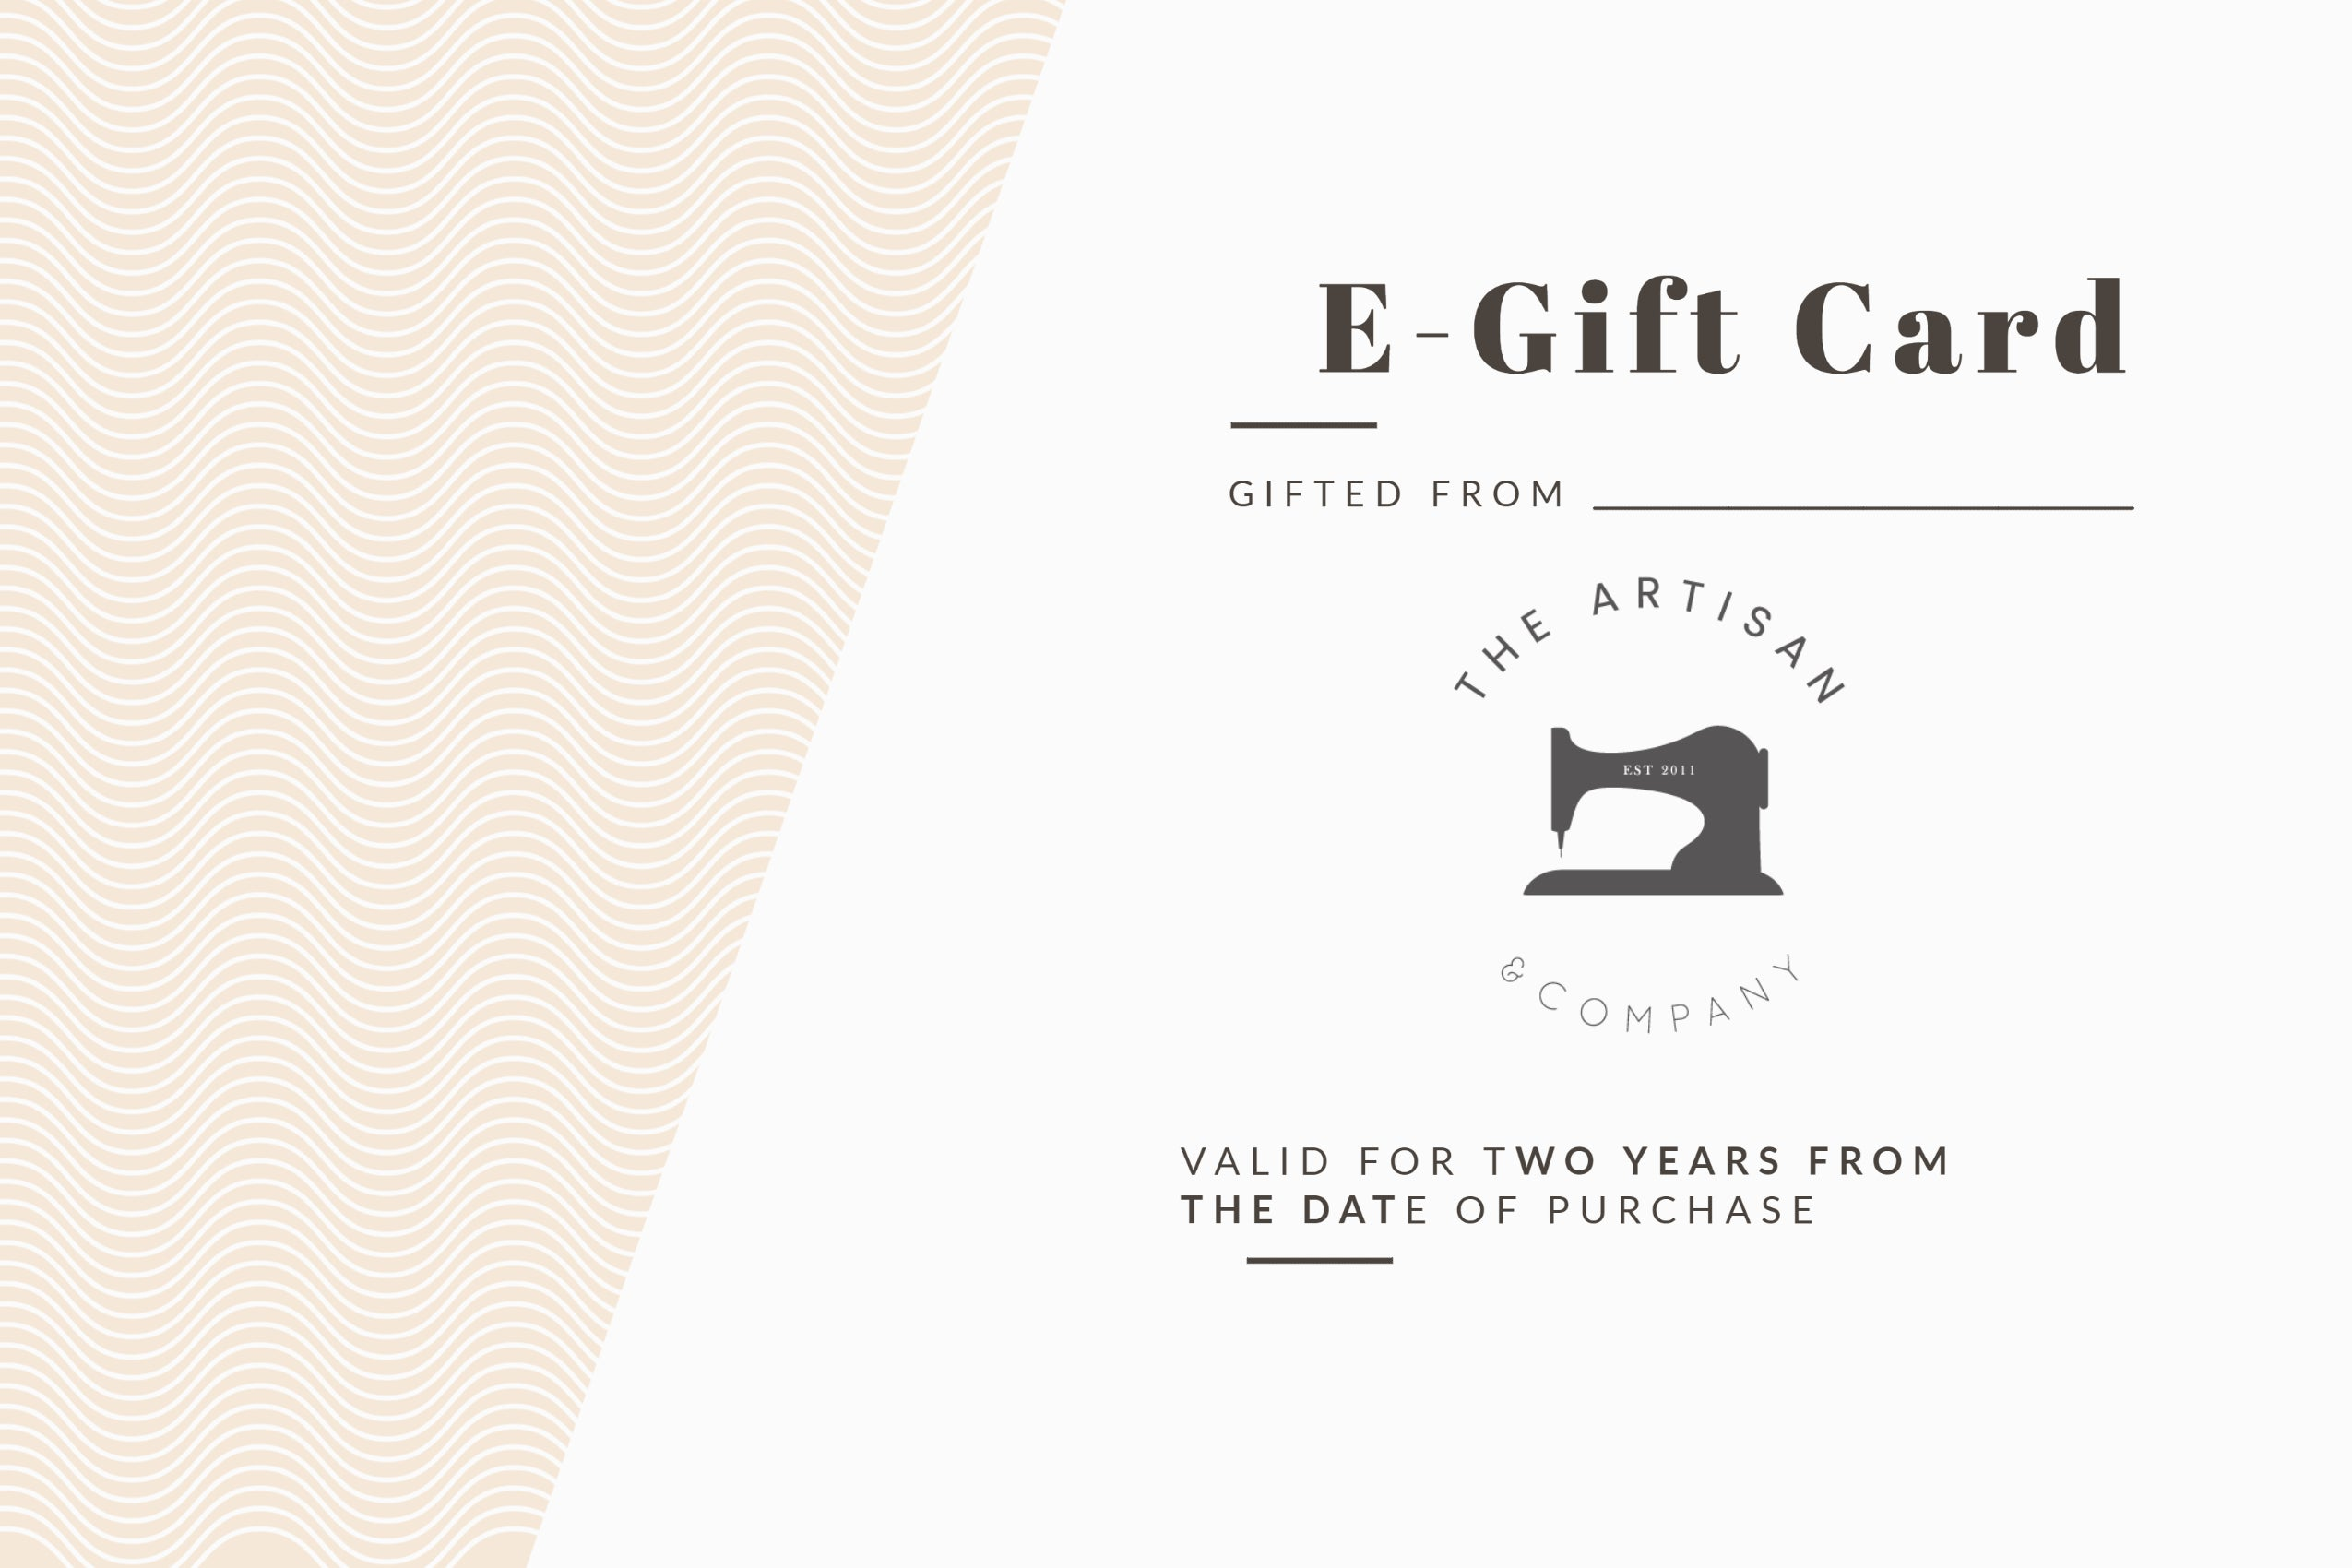 The Artisan and Company Online Store E-Gift Card ranging from $10-$300 usd